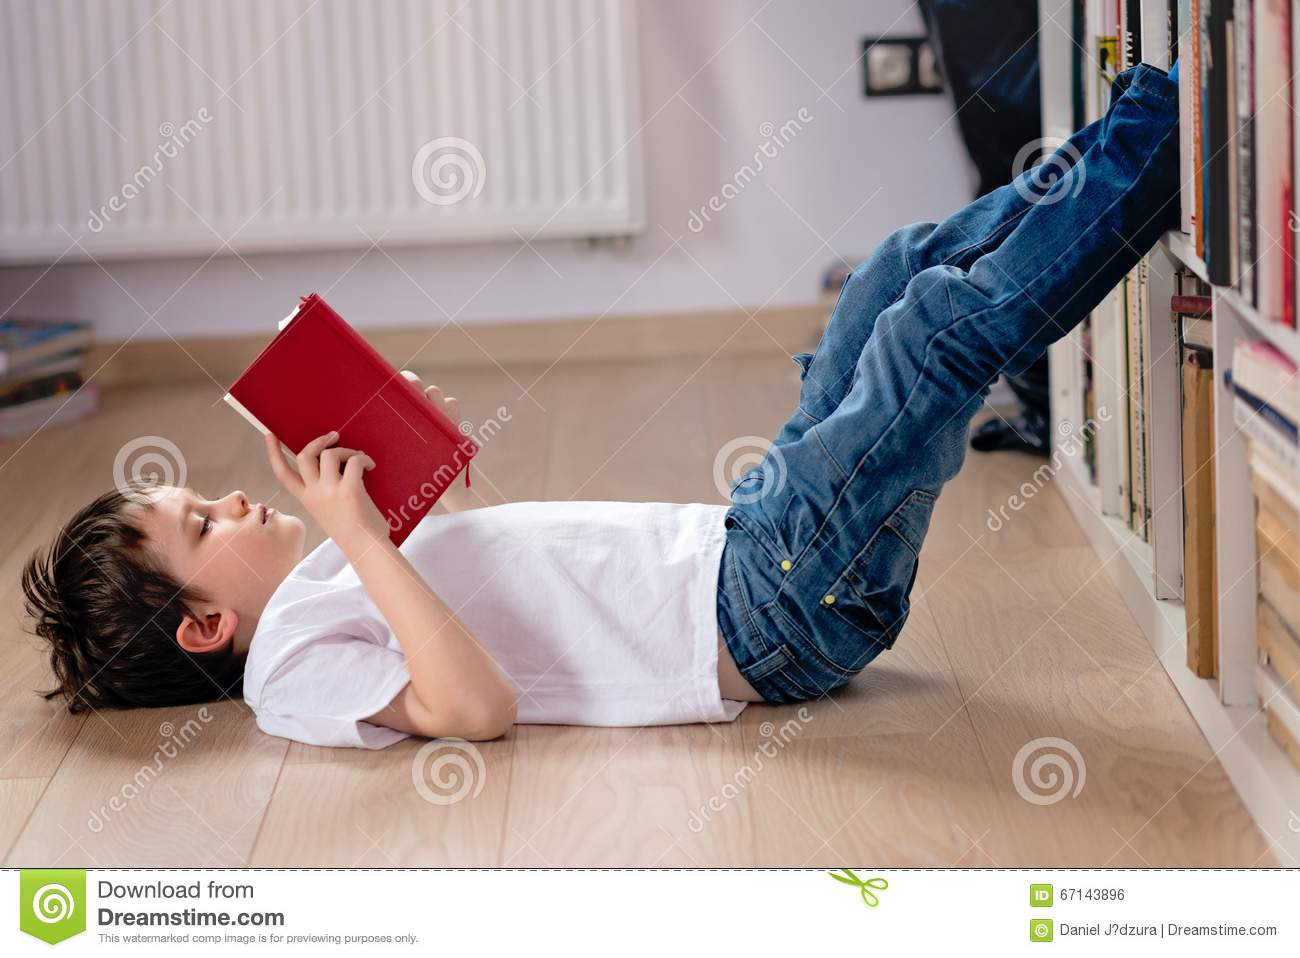 Little boy child reading a book in the library.